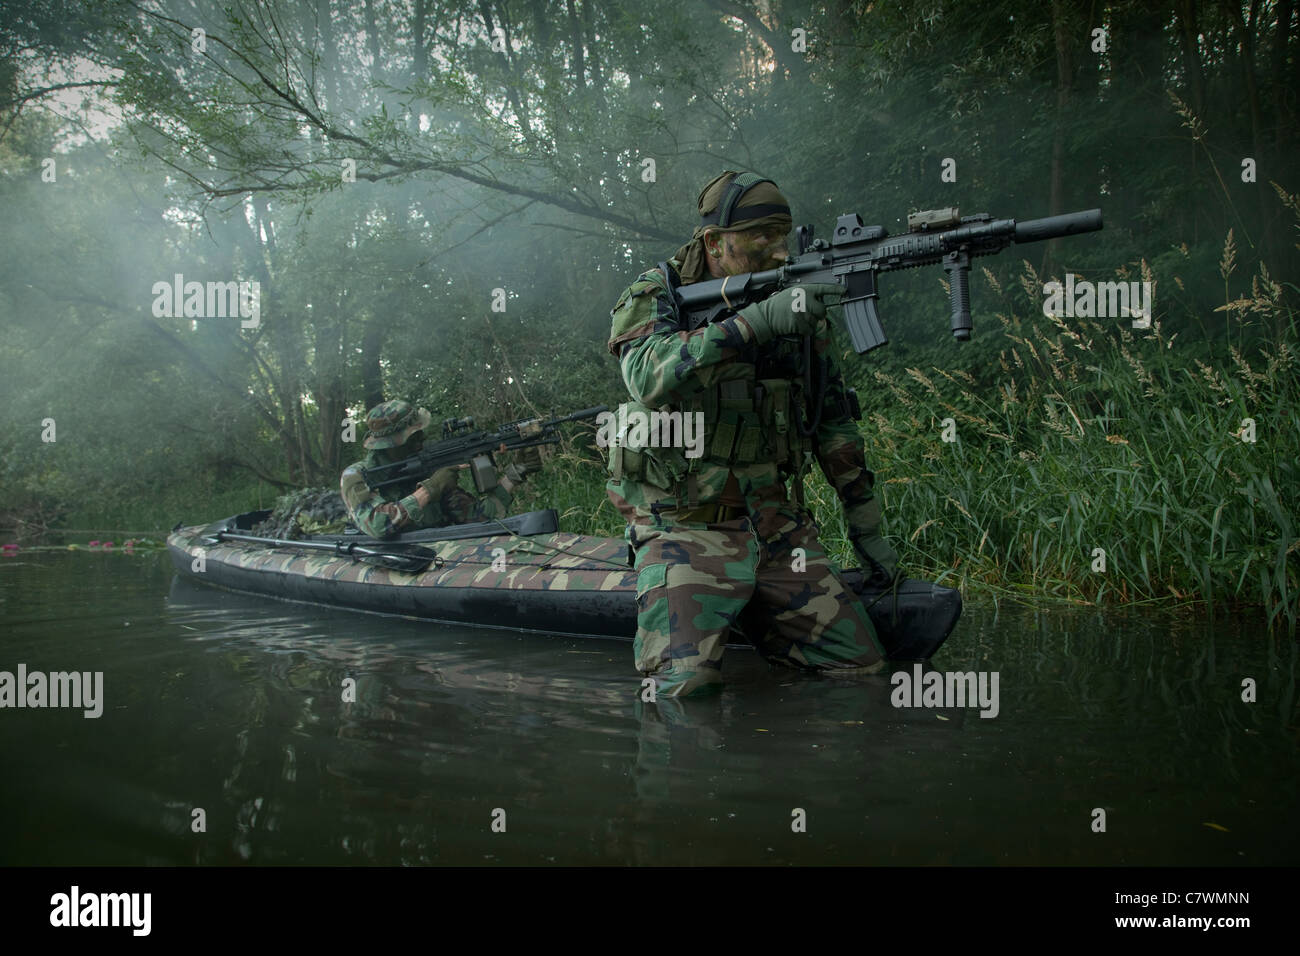 Navy SEALs navigate the waters in a folding kayak during jungle warfare operations. Stock Photo